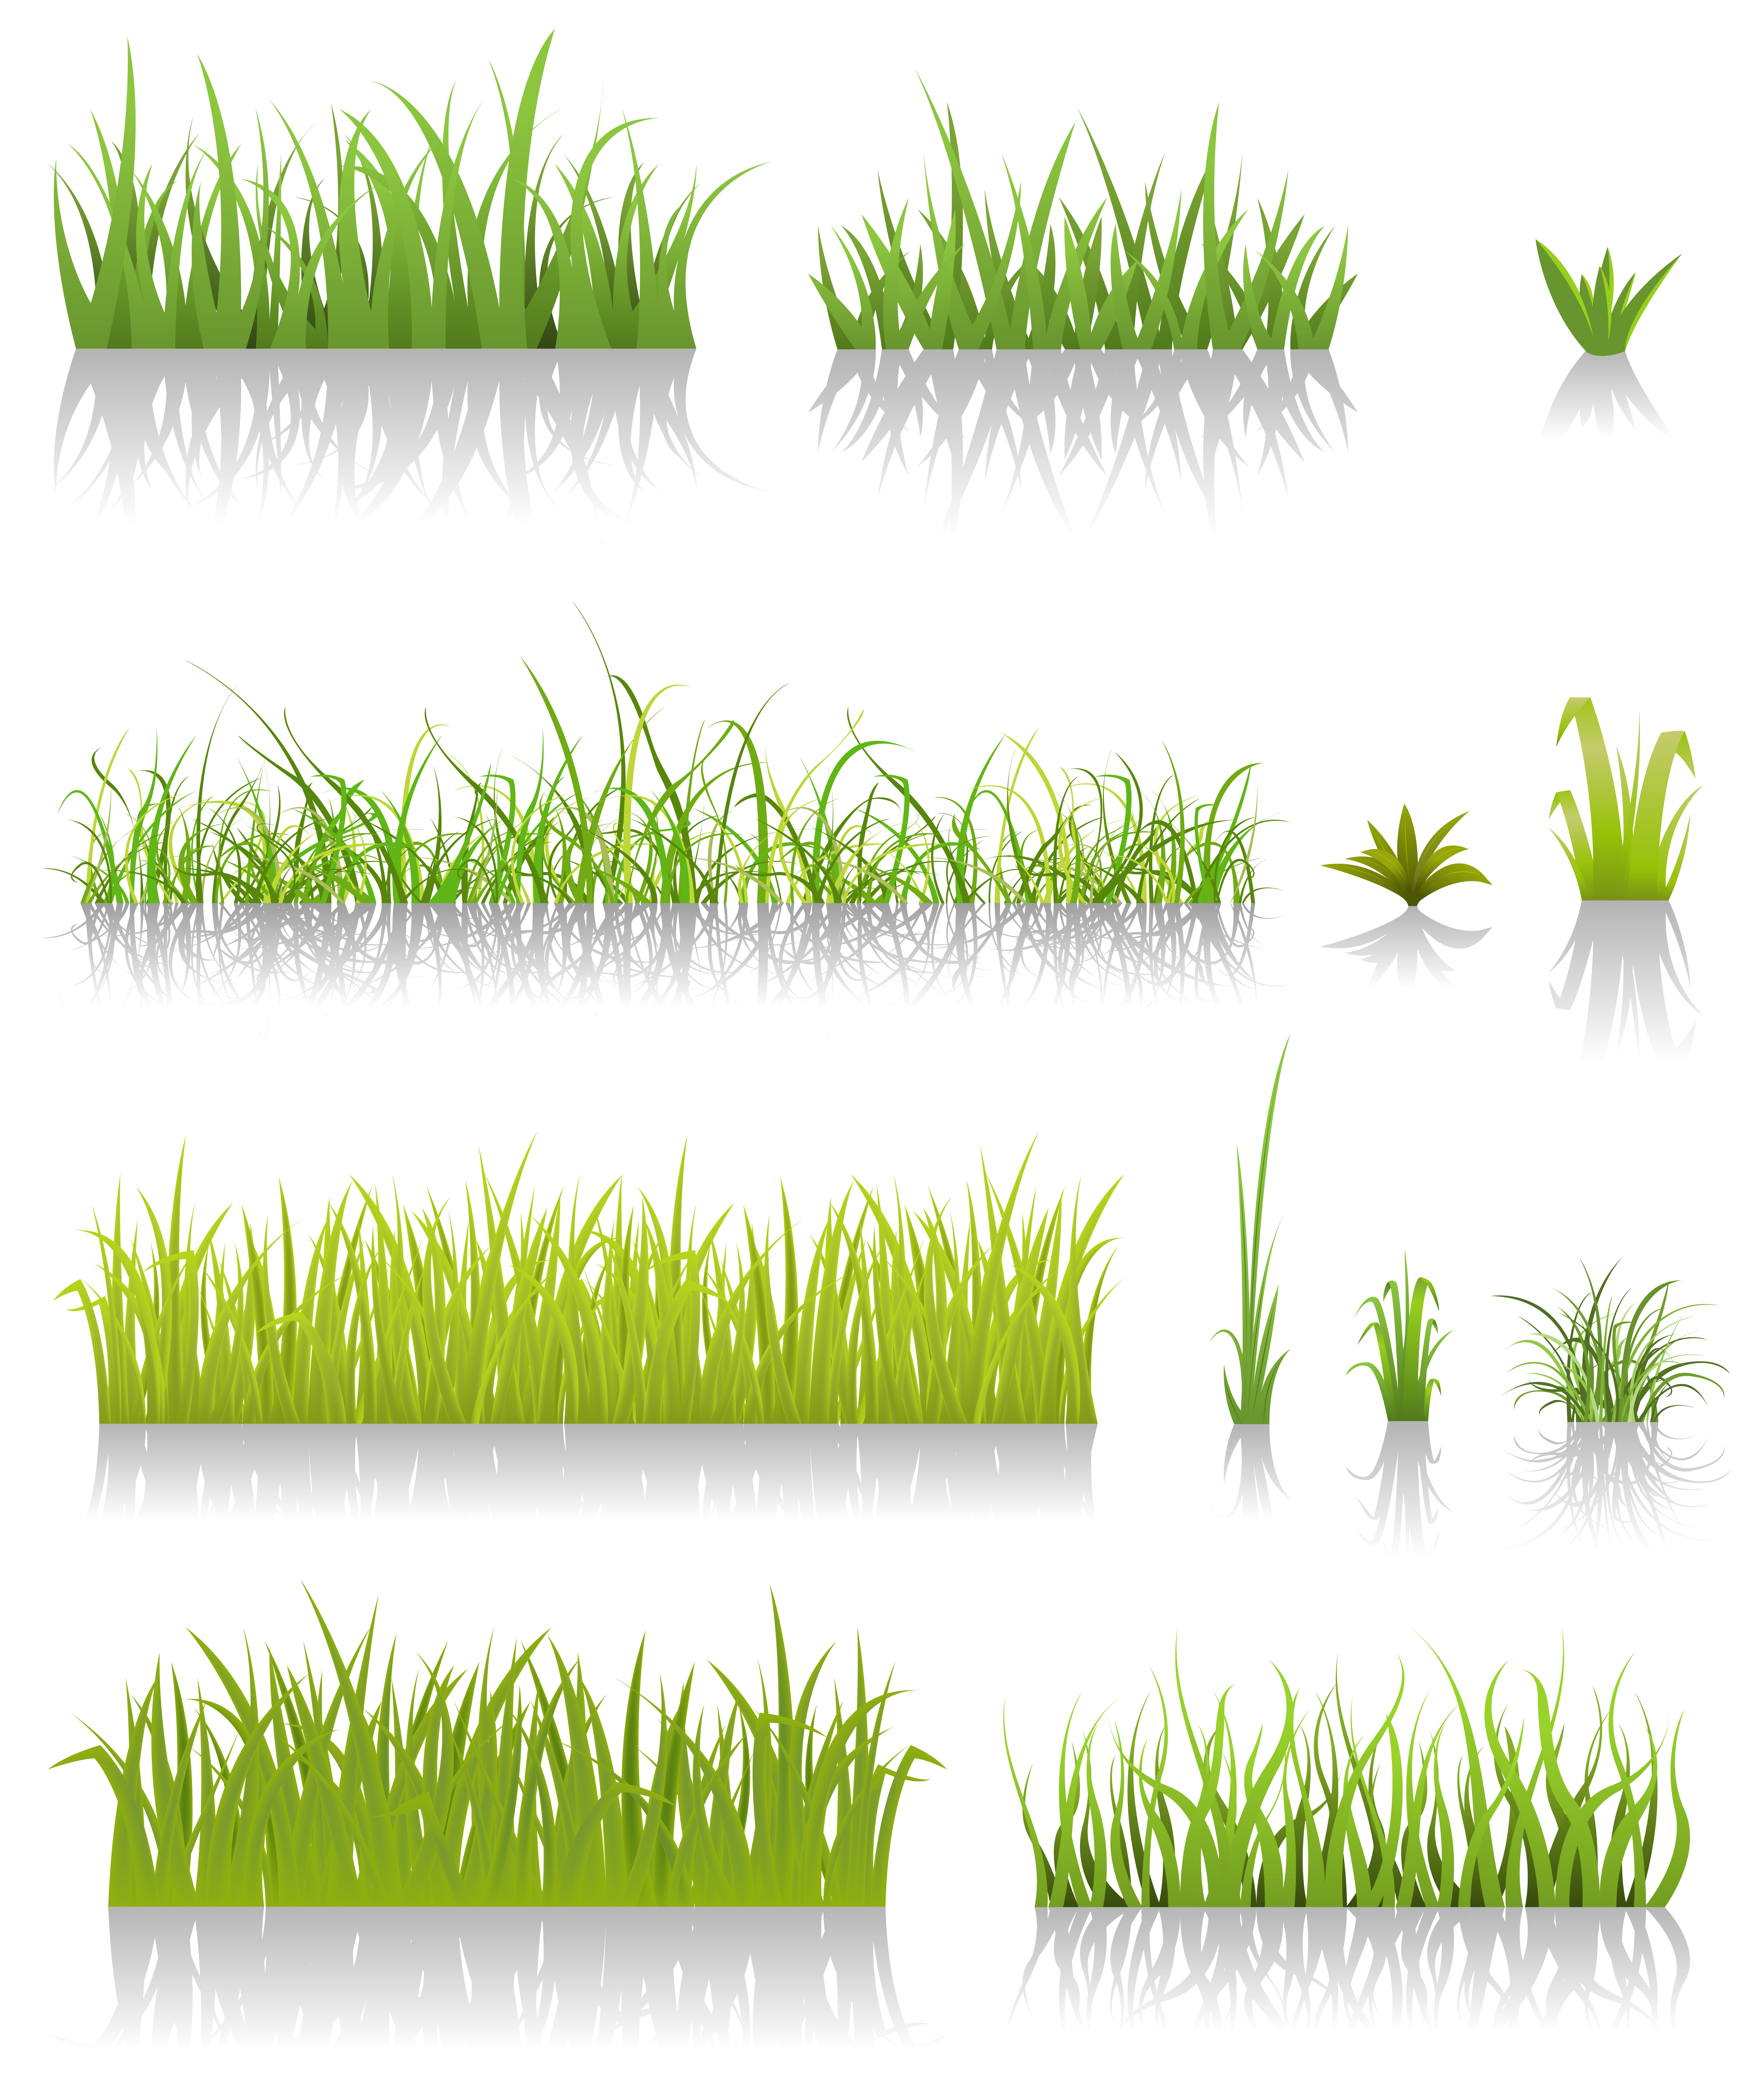 Blades of grass clipart black and white Grass Blades Free Vector Art - (22,211 Free Downloads) black and white